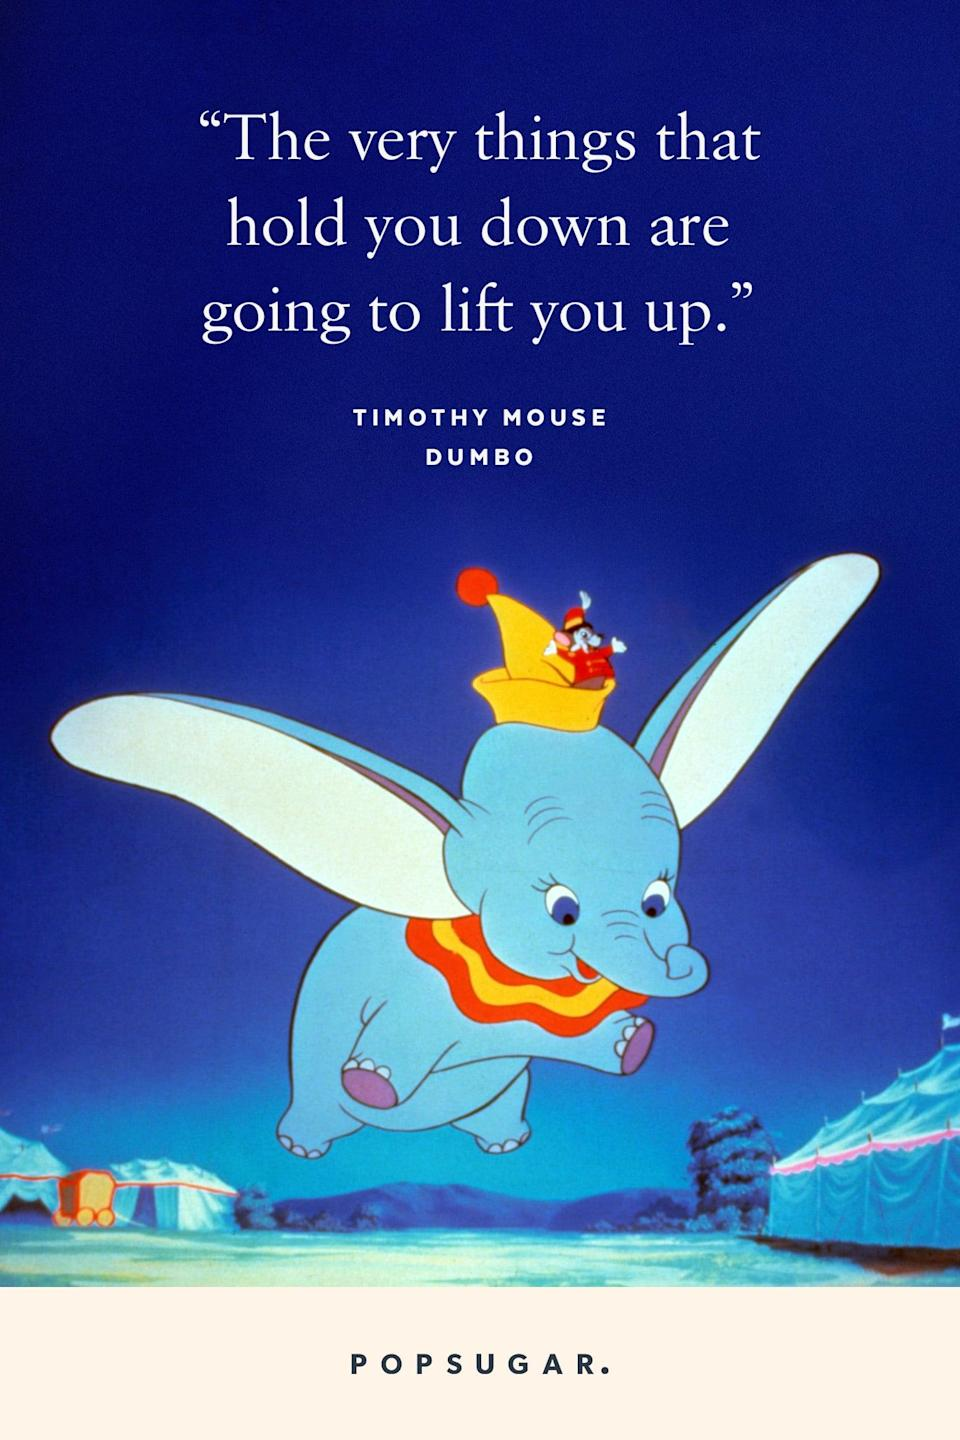 "<p>""The very things that hold you down are going to lift you up."" - Timothy Mouse, <b>Dumbo</b></p>"